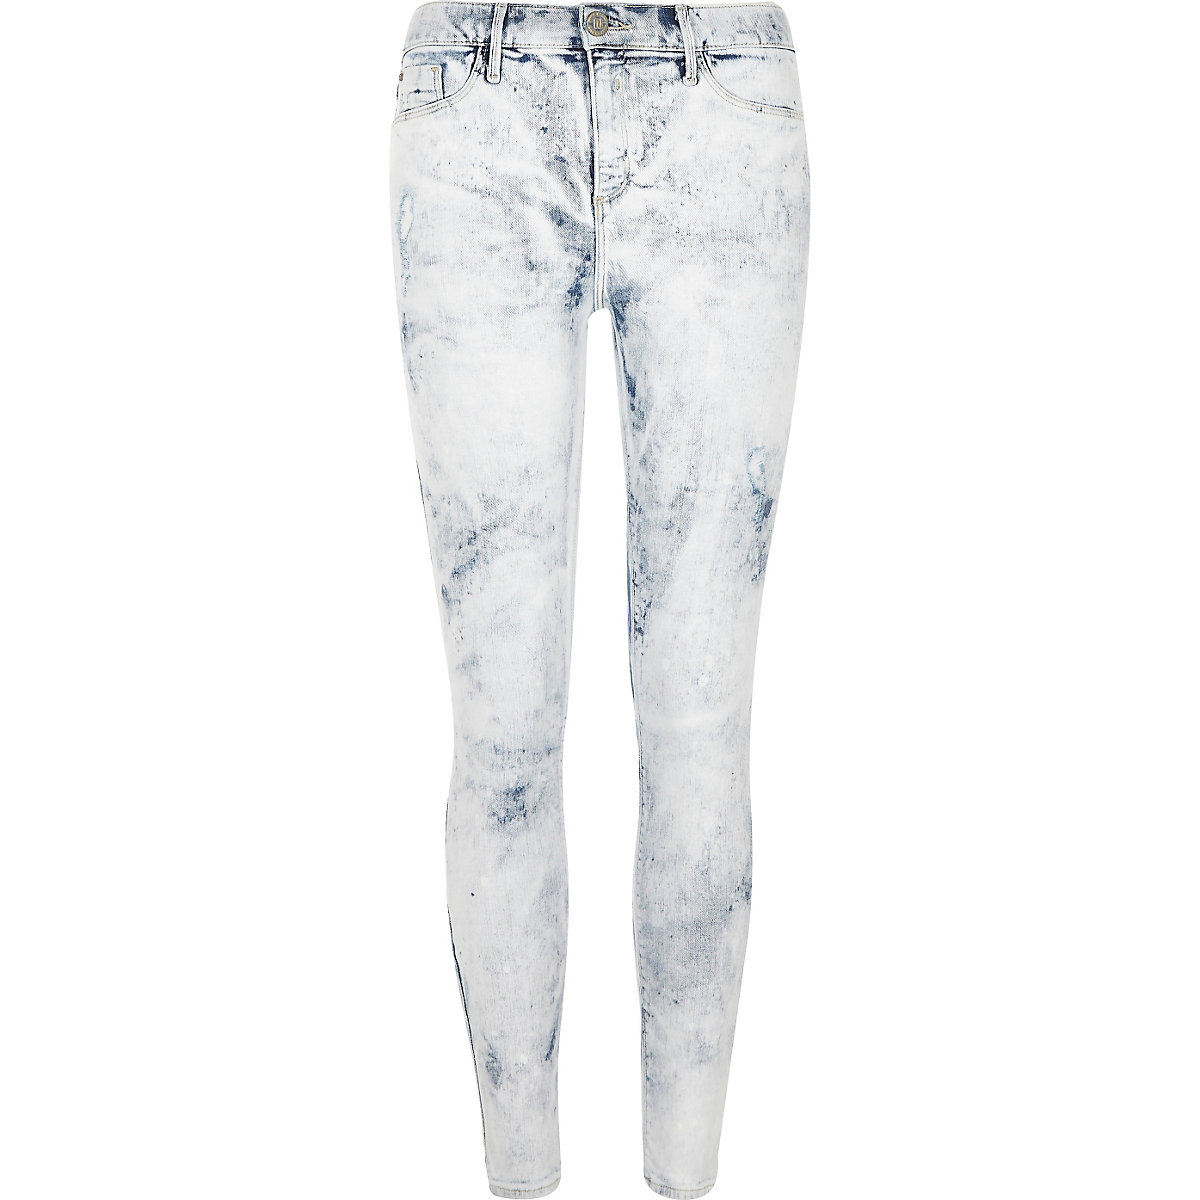 White acid wash paint effect Molly jeggings